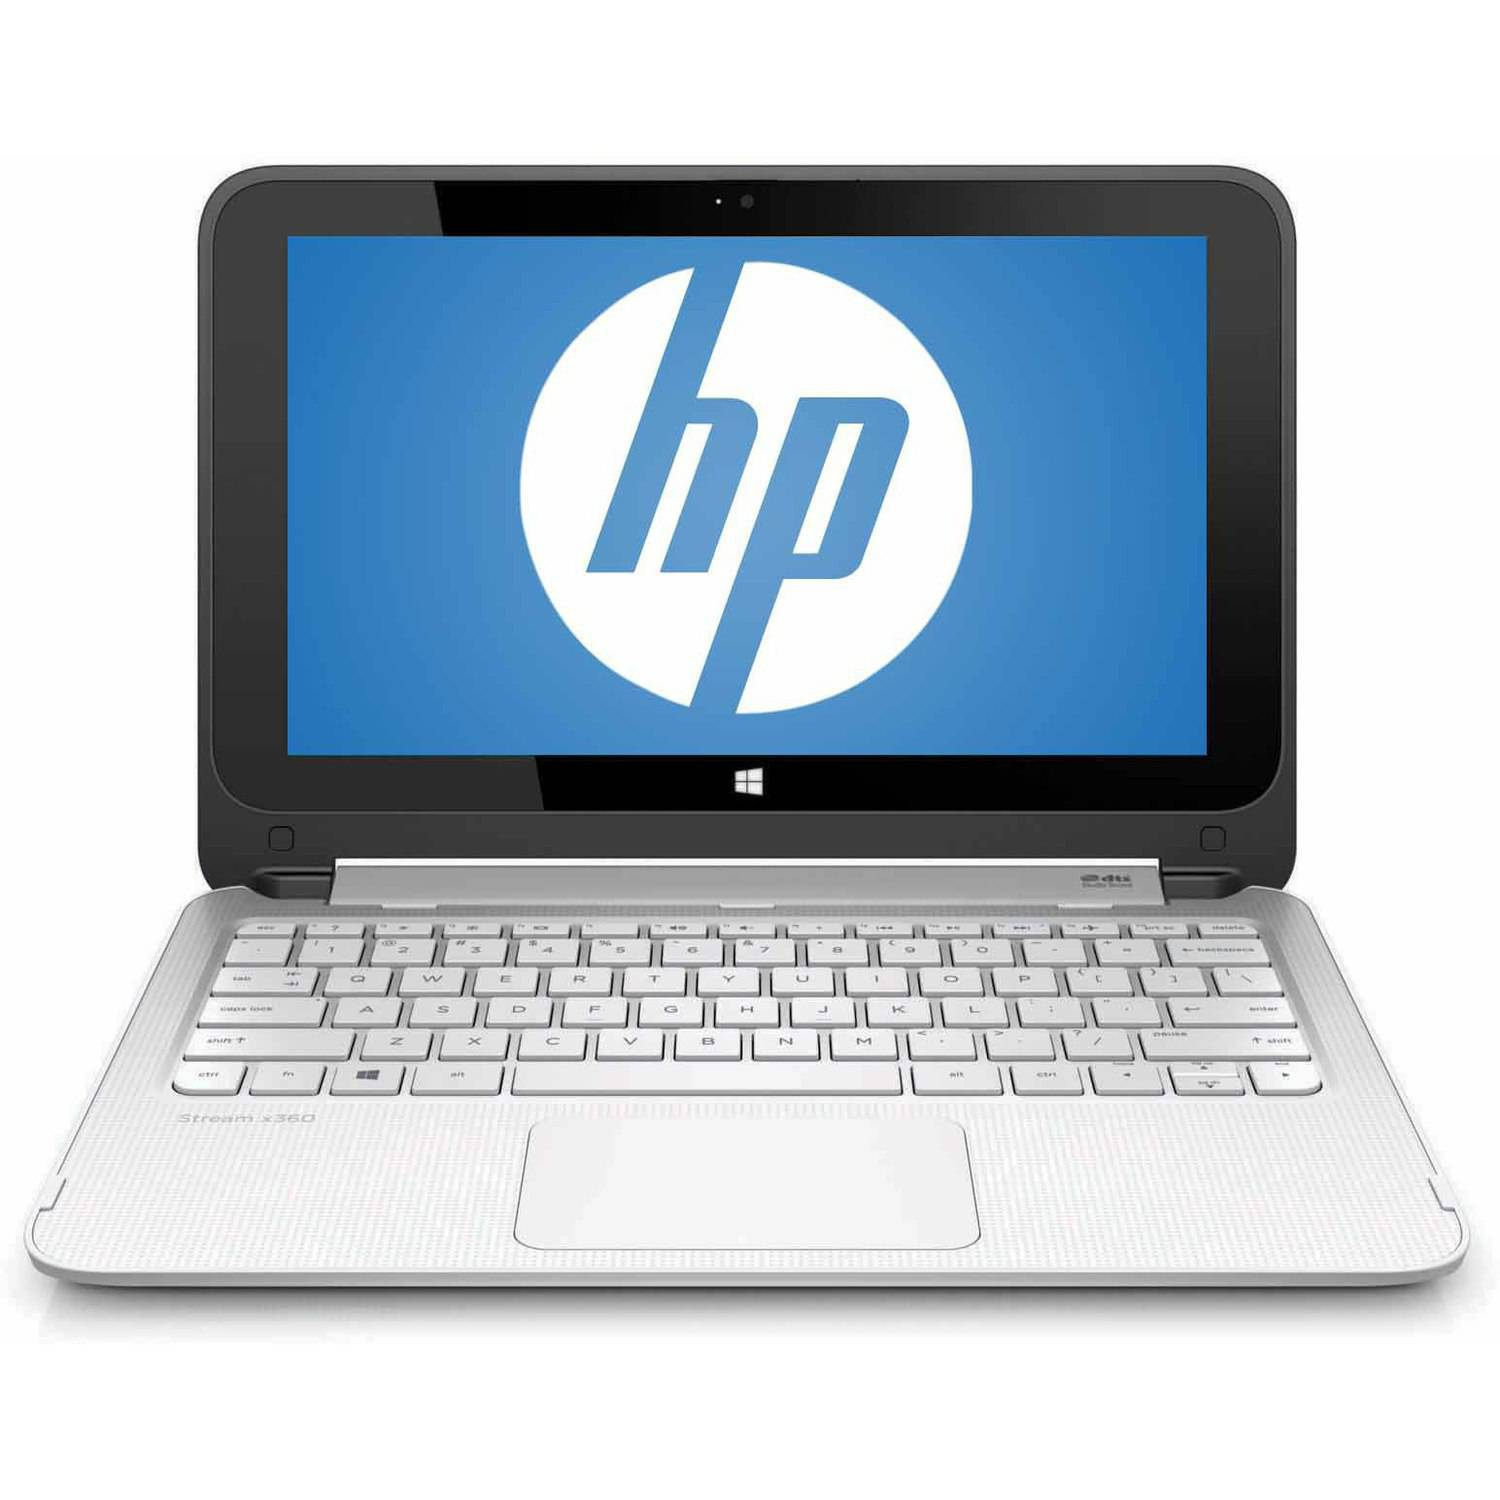 """Refurbished HP Blizzard White 11.6"""" Stream 11-p015wm X360 Laptop PC with Intel Celeron N2840 Dual-Core Processor, 2GB Memory, touch screen, 32GB eMMC and Windows 8.1"""